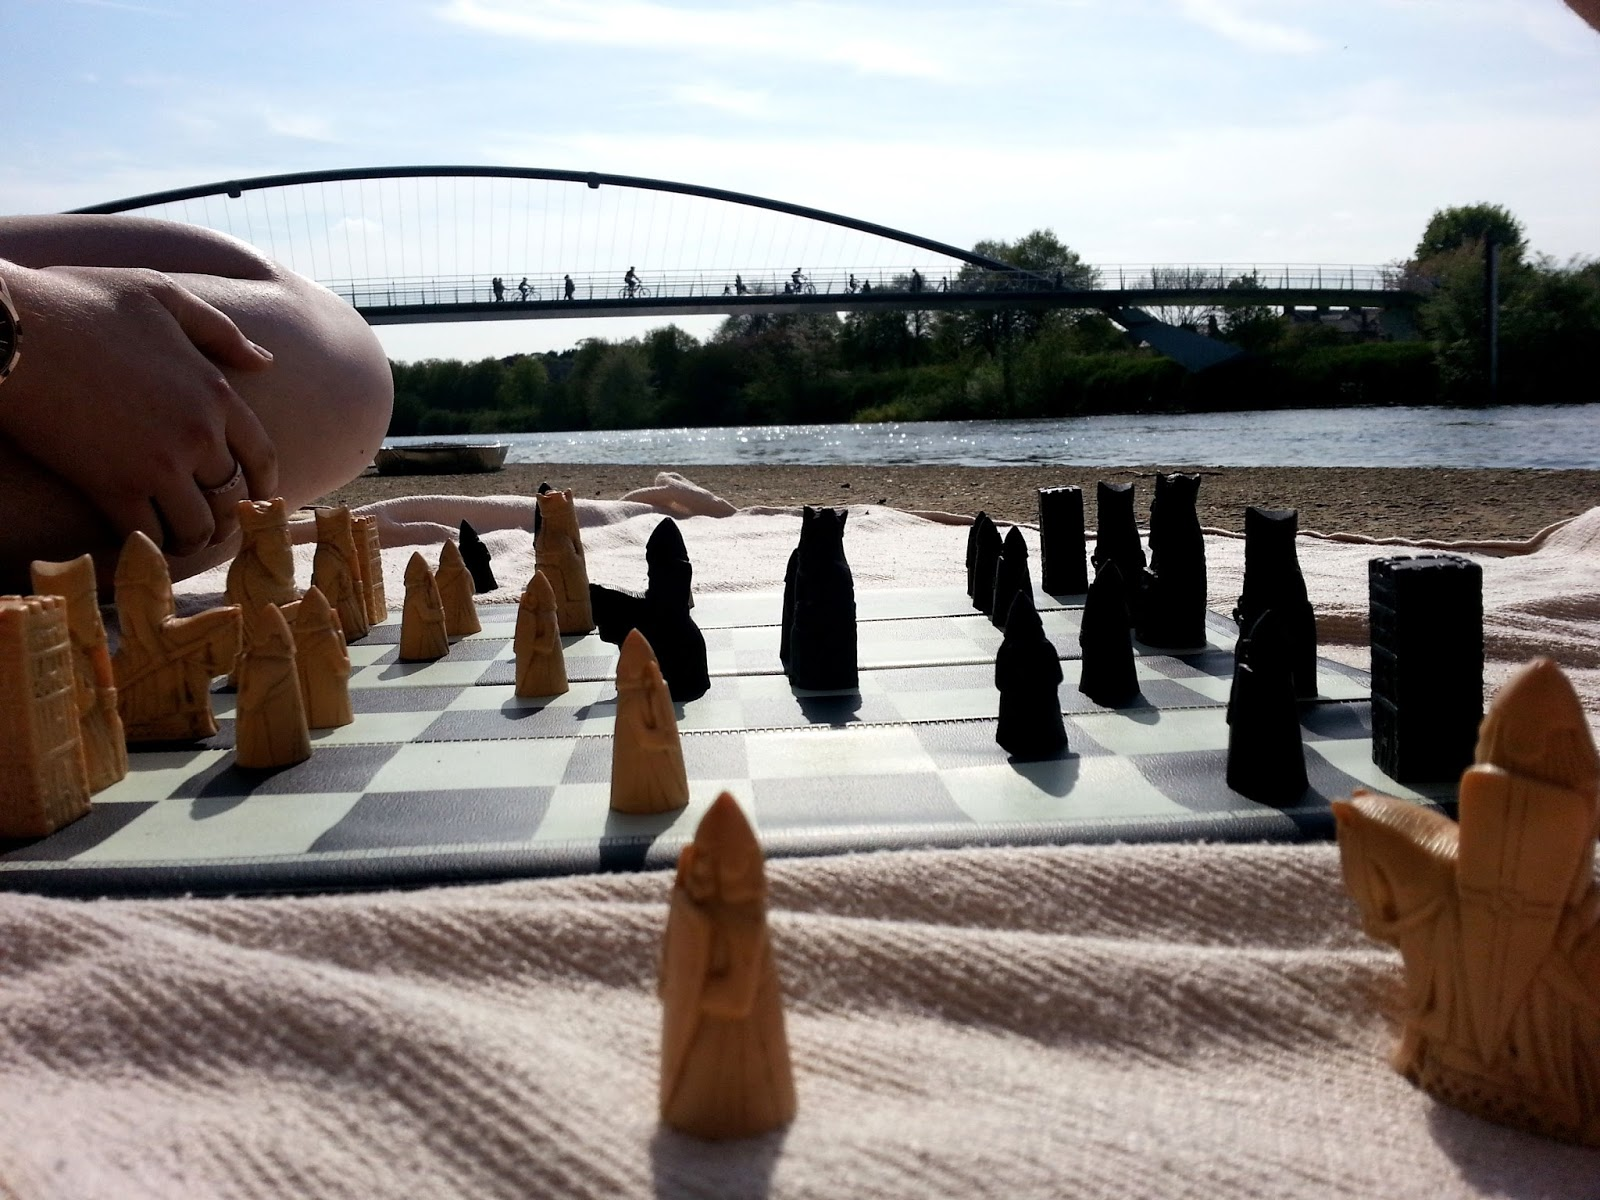 Chess by the river